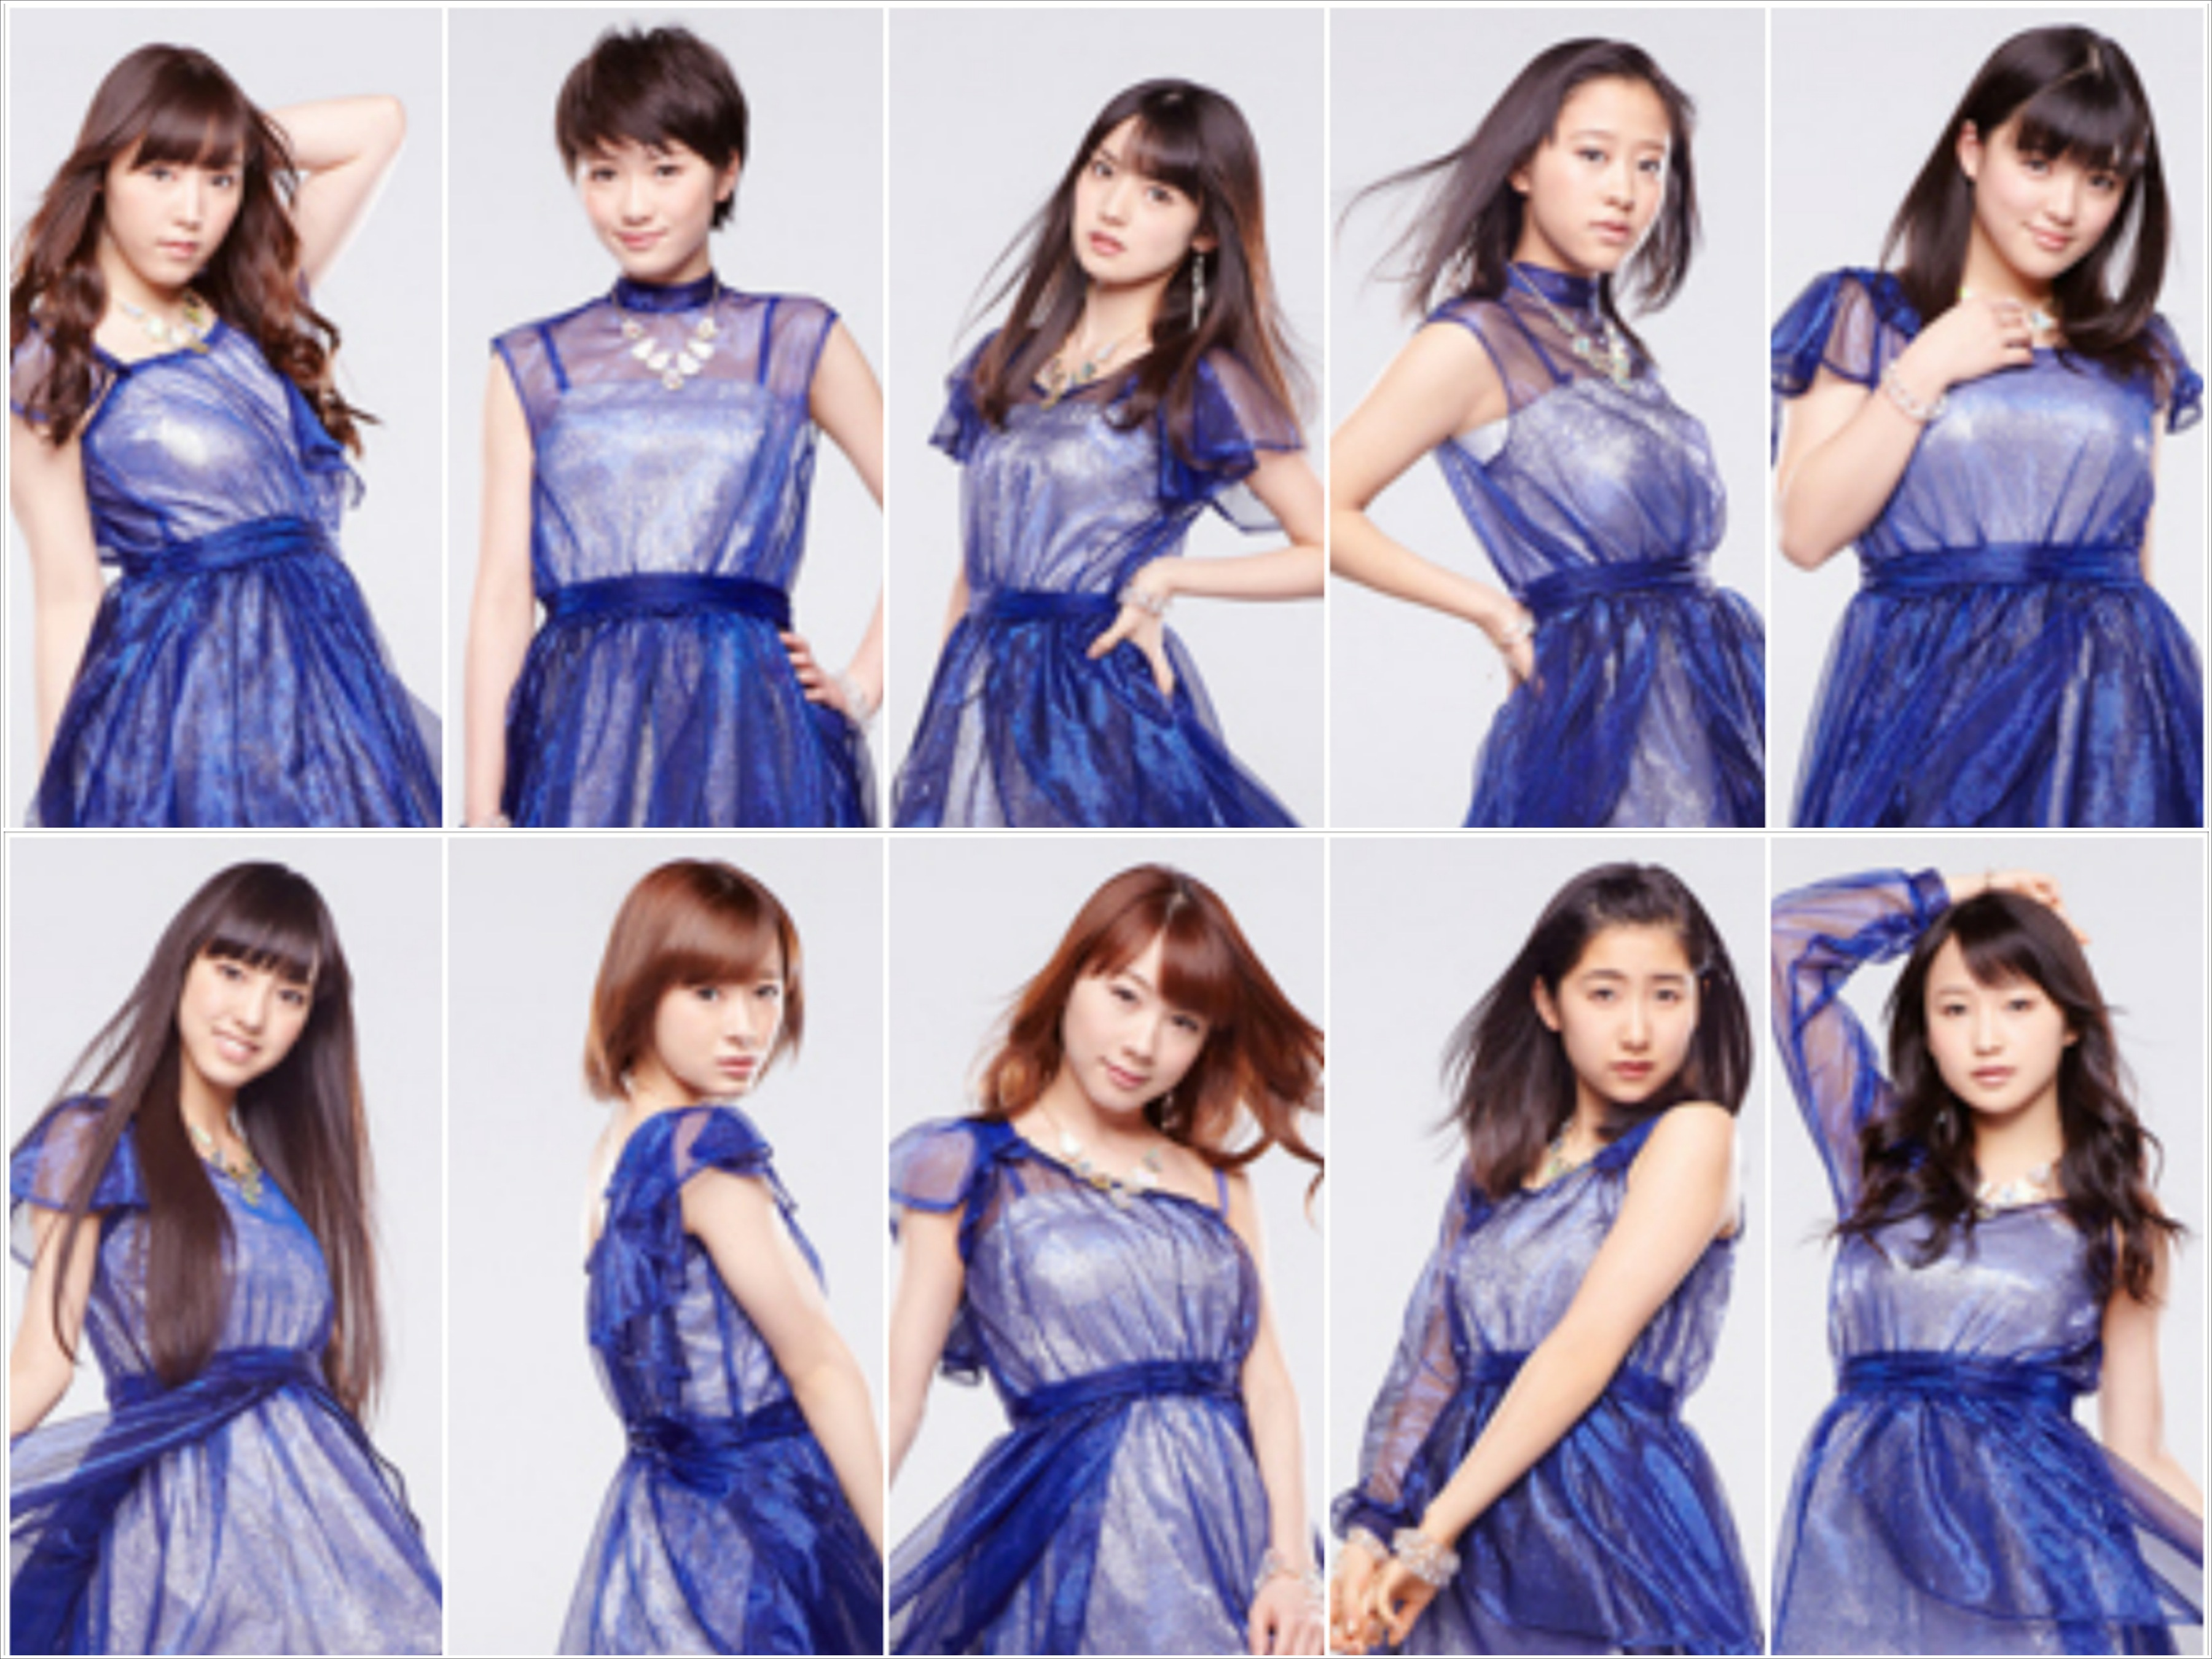 ♥AsiaPOP: Morning Musume PV Only You!